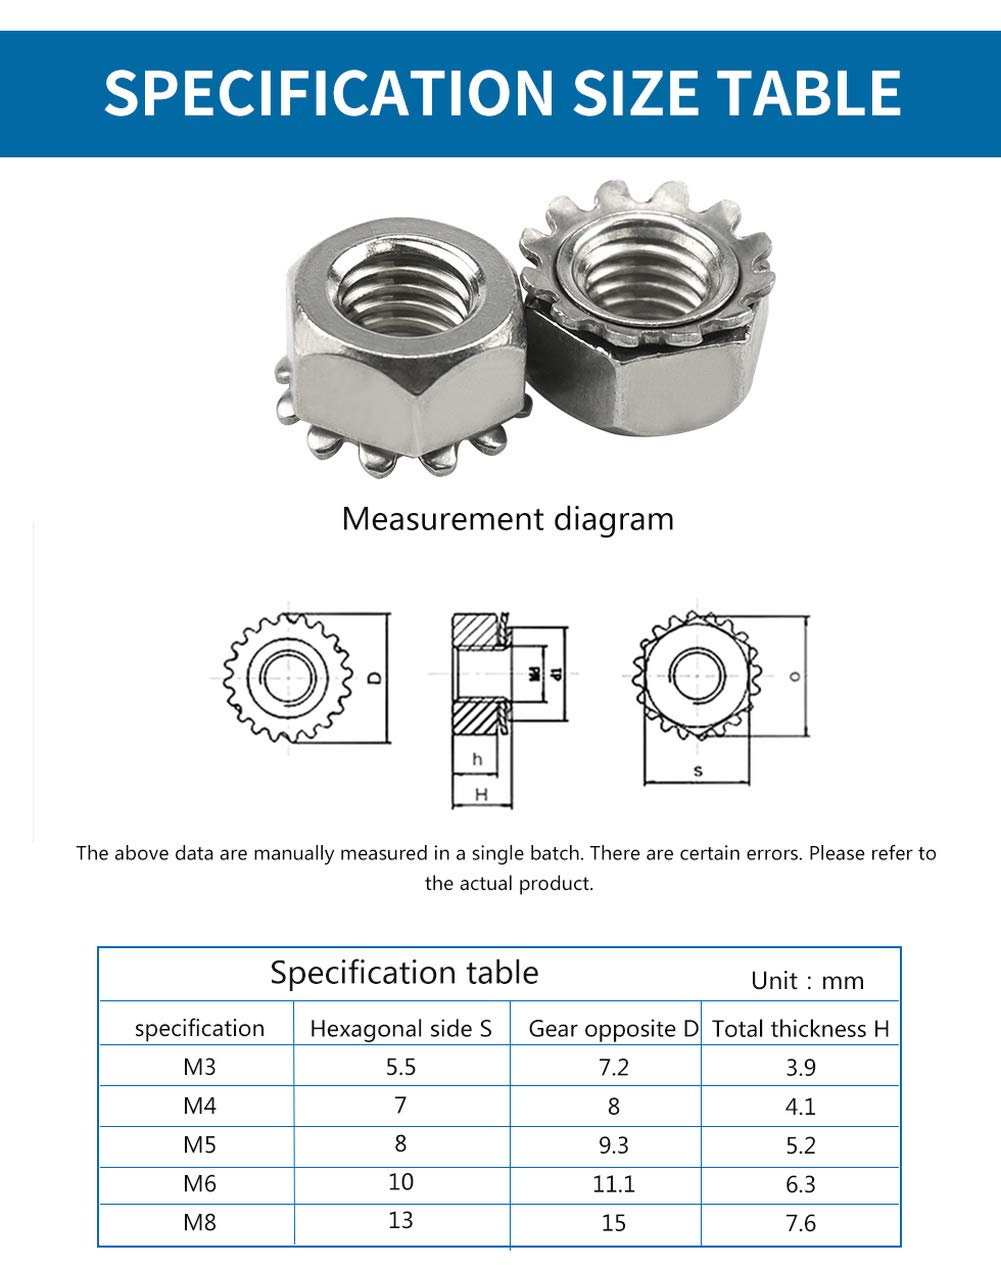 304 Stainless Steel K Type Nut Luchang M3 M4 M5 M6 M8 K-Type K-Lock Nut Nickel Plated Keps Nuts Toothed Hex Nut M5 10Pcs